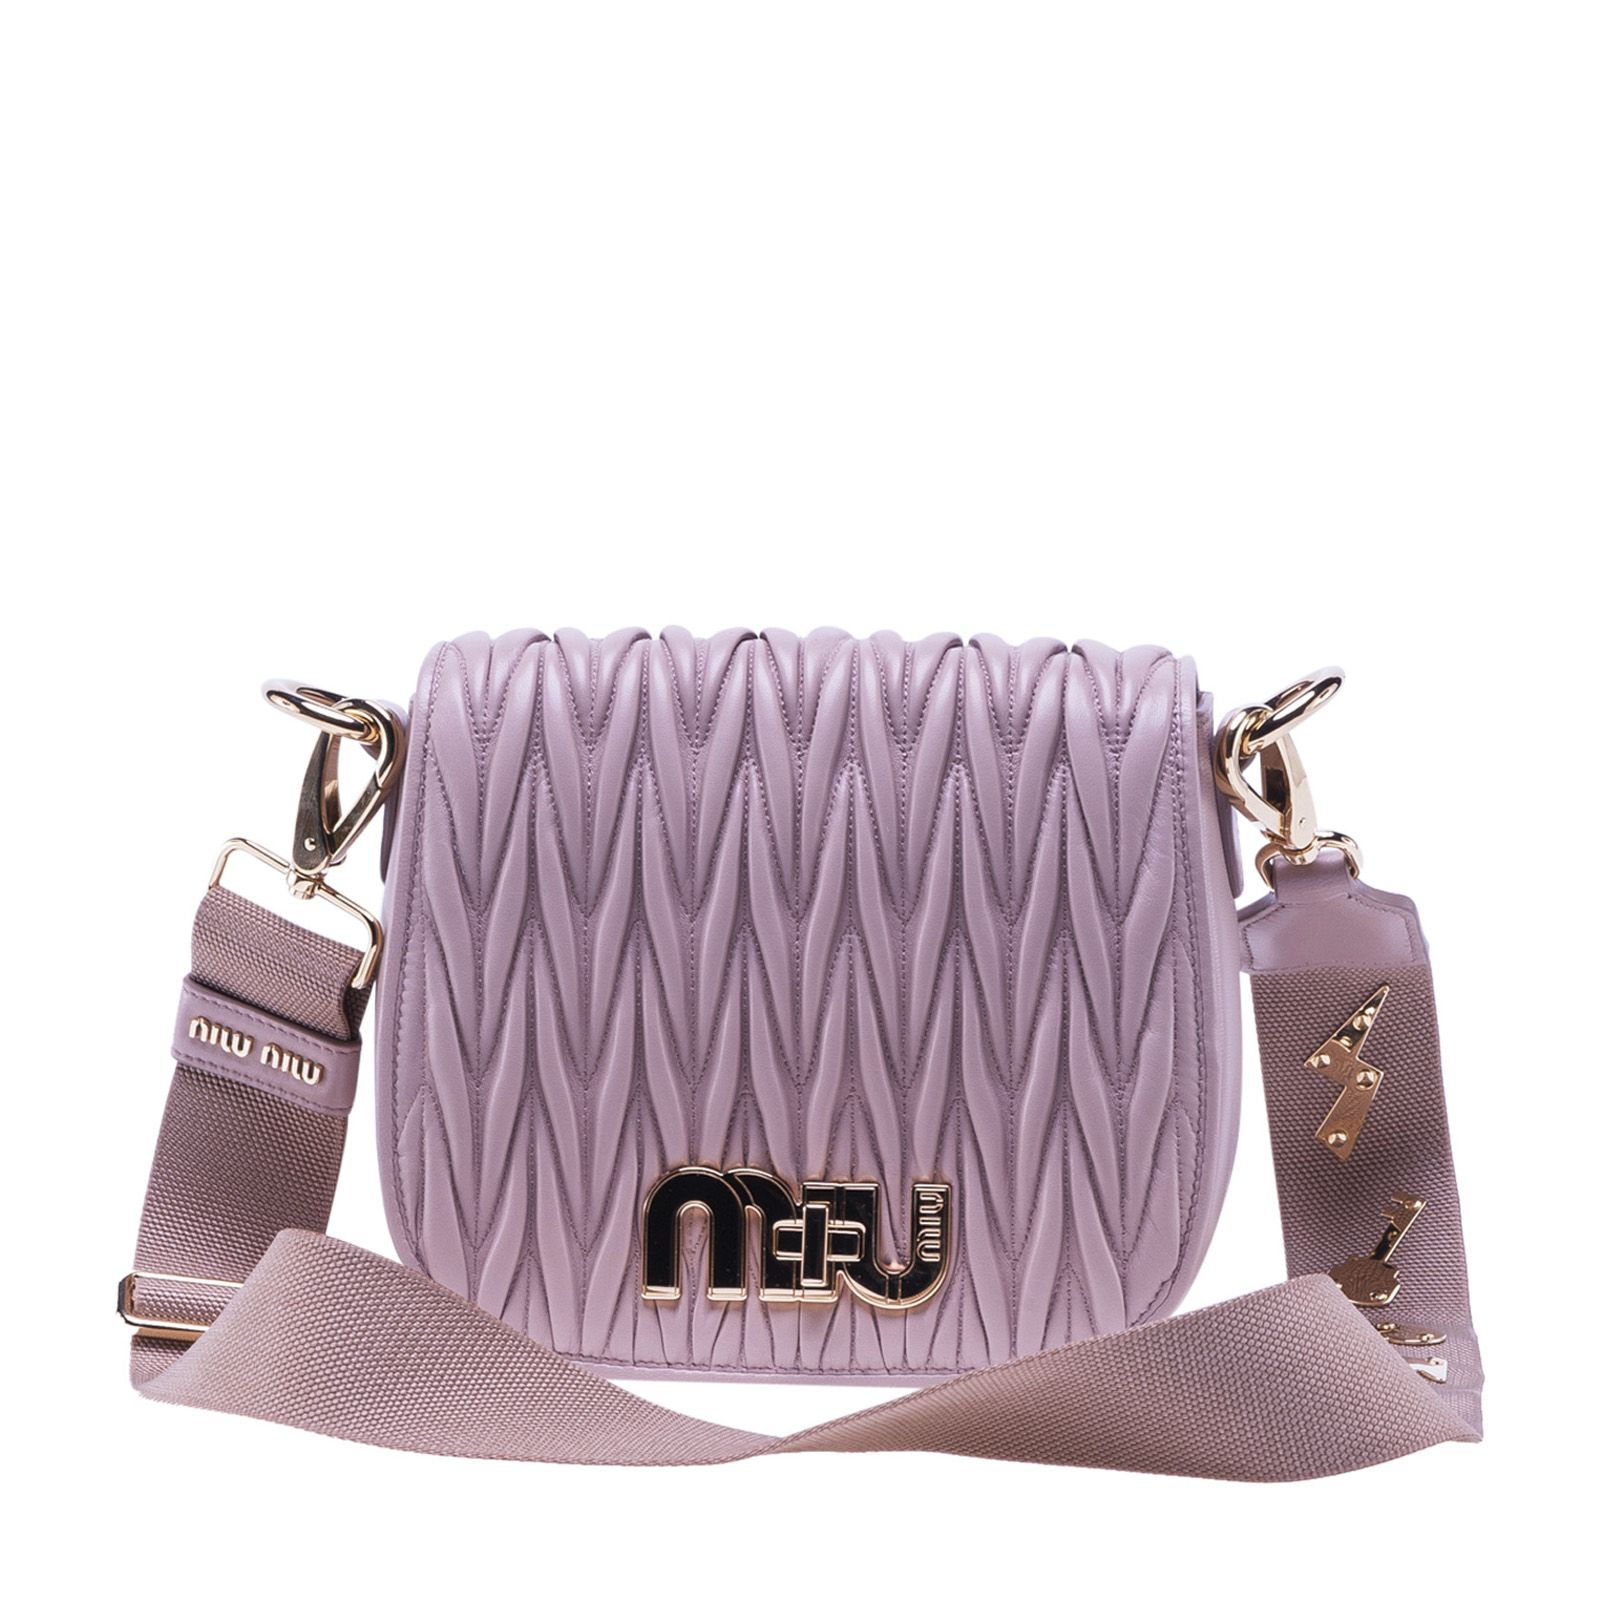 MIU MIU MATELASSÉ SHOULDER BAG a90482eee2008